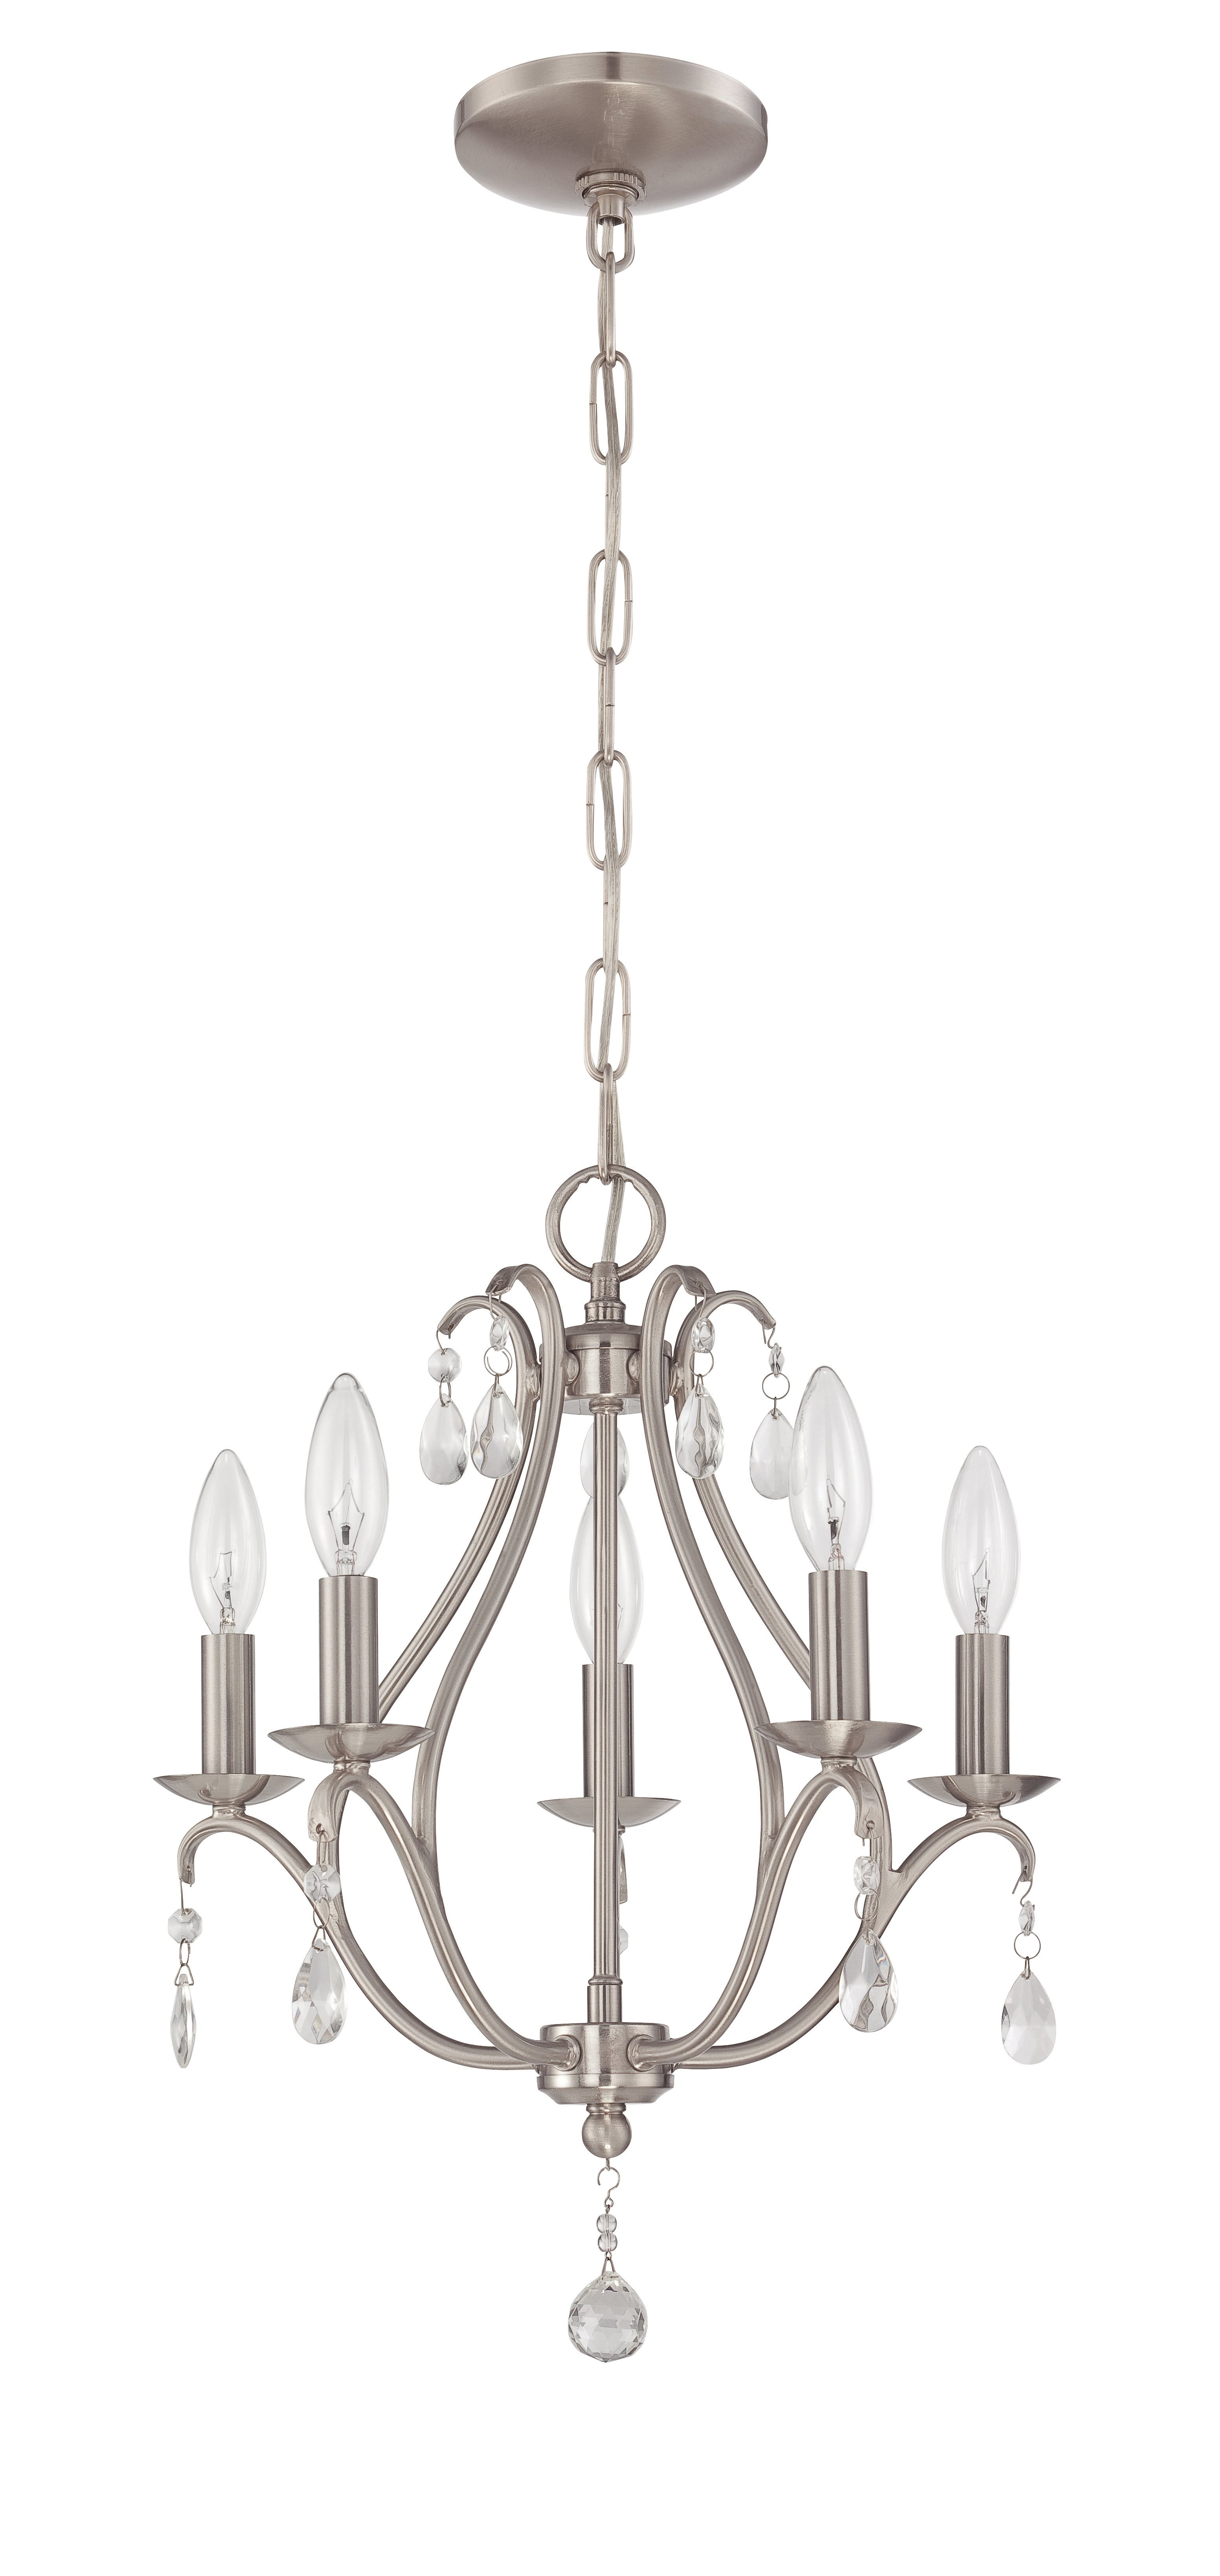 Famous Florentina 5 Light Candle Style Chandeliers Inside Palumbo 5 Light Candle Style Chandelier (View 3 of 20)